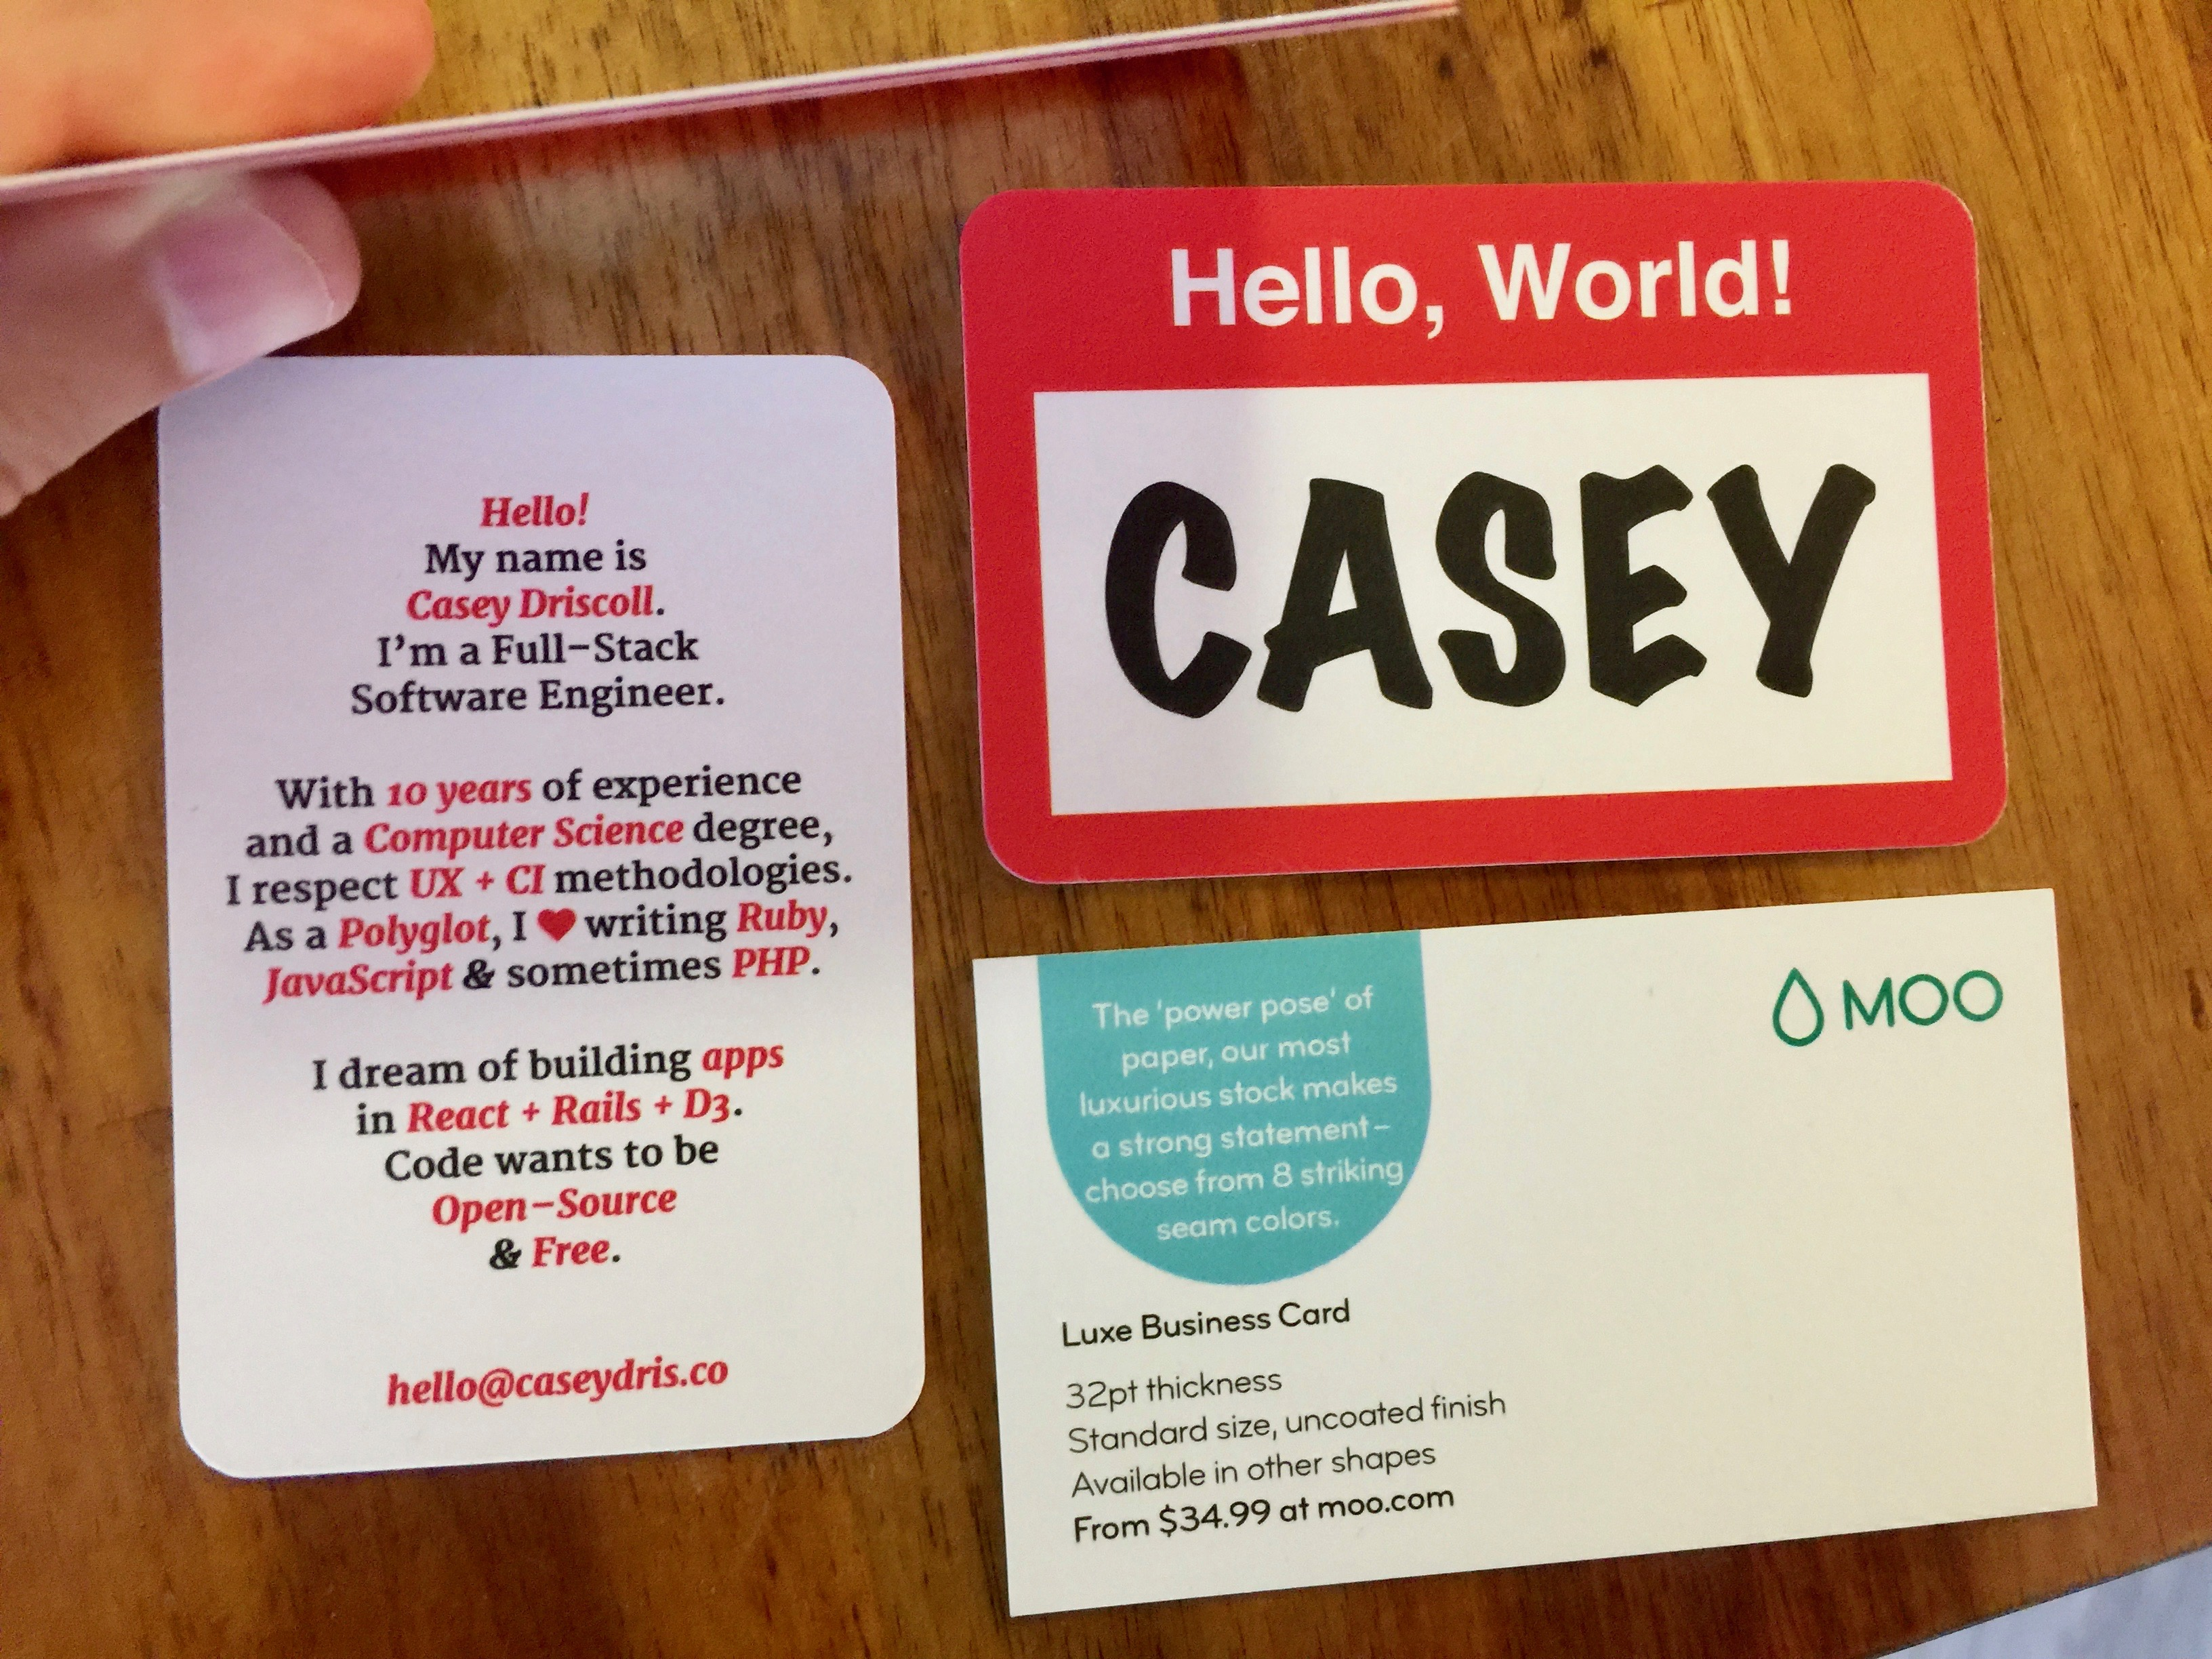 Hello new personal business card casey driscoll the moo size cards are more square shaped compared to a conventional business card reheart Gallery